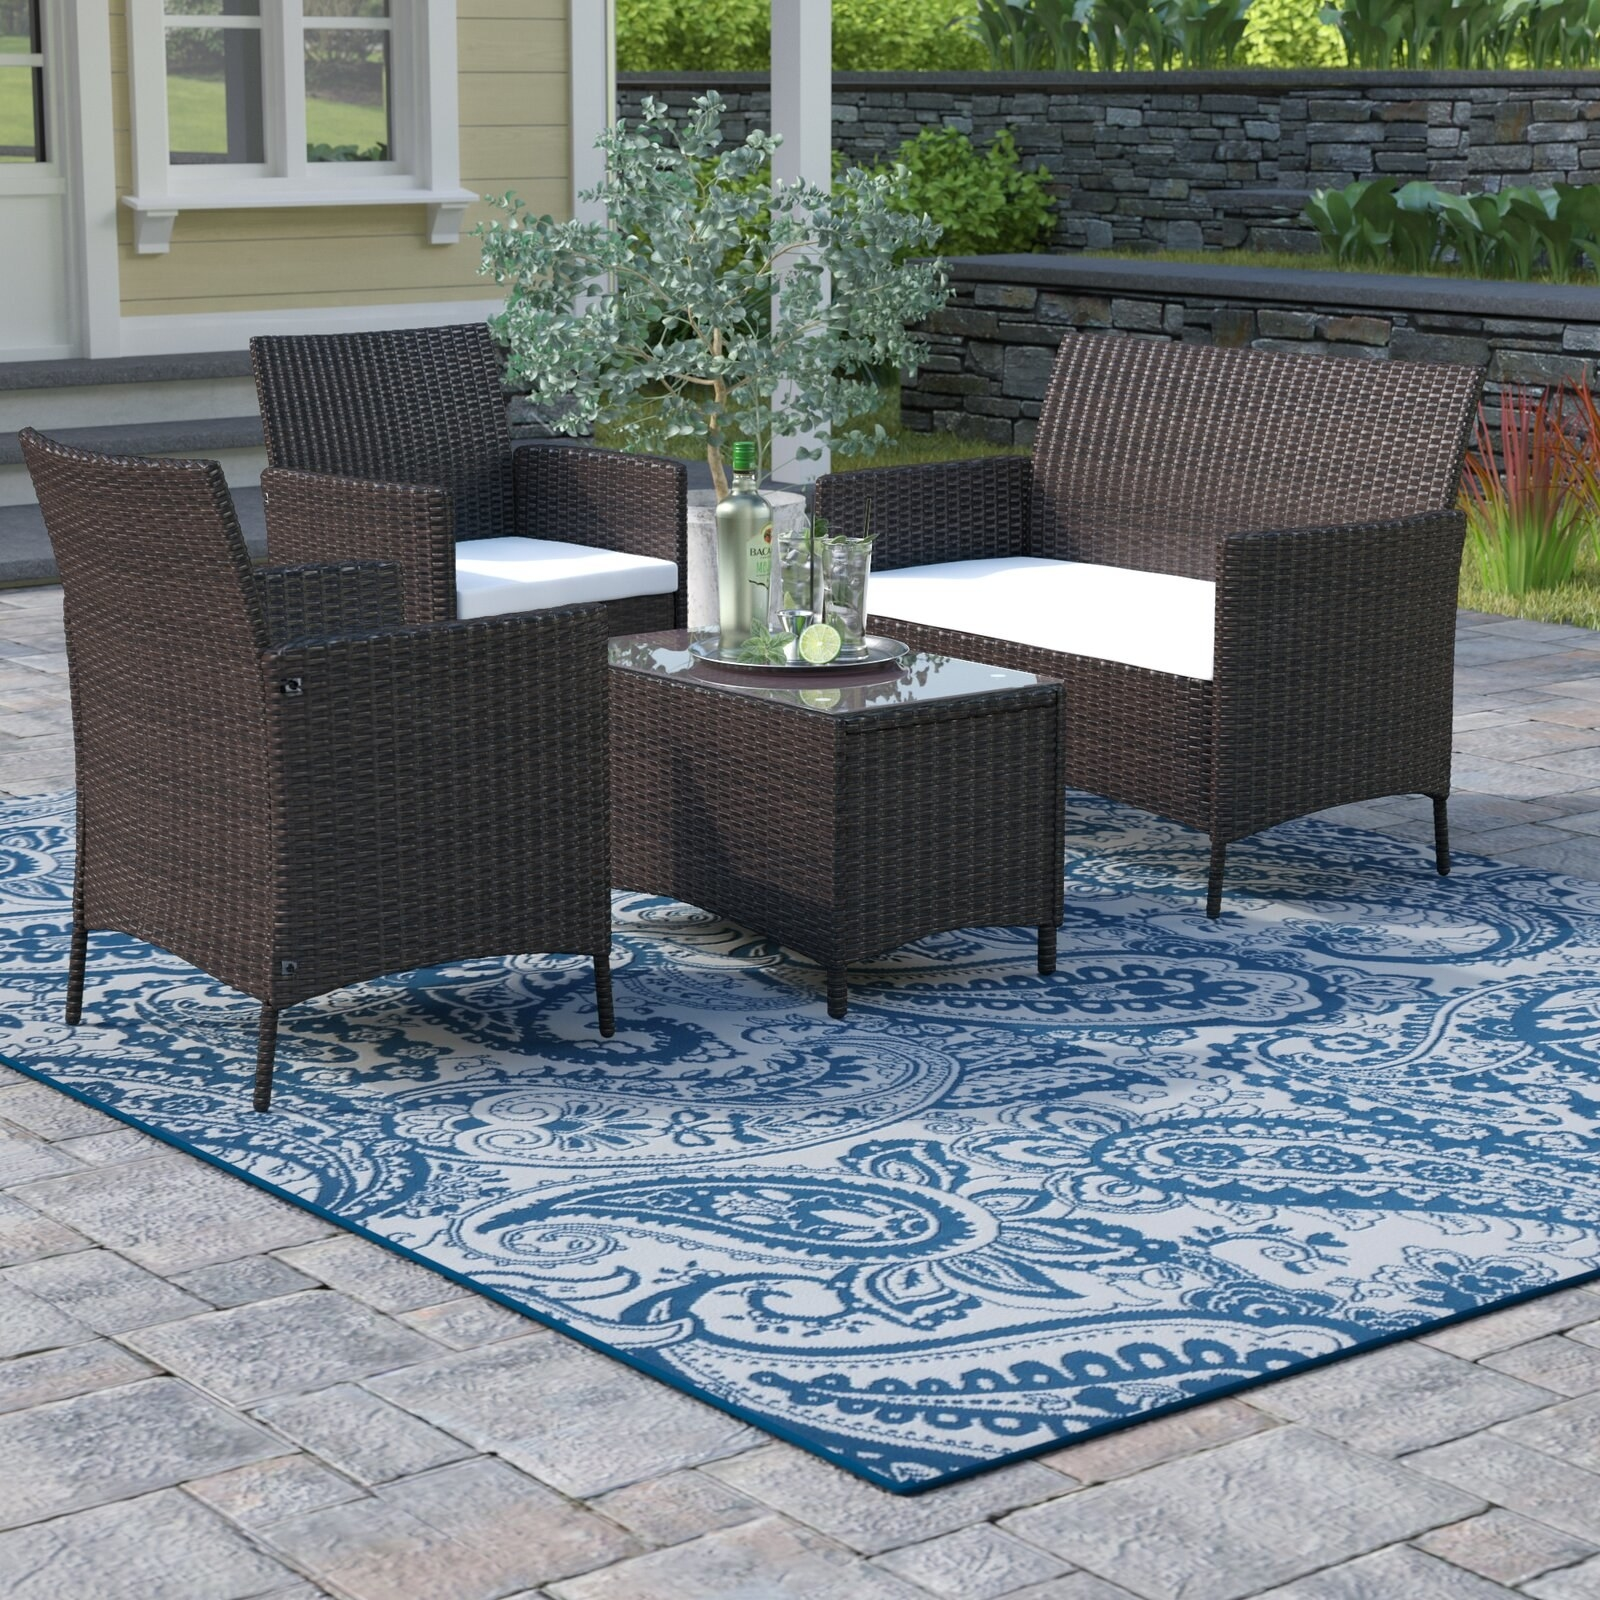 The matching rattan, dark brown set with white cushions